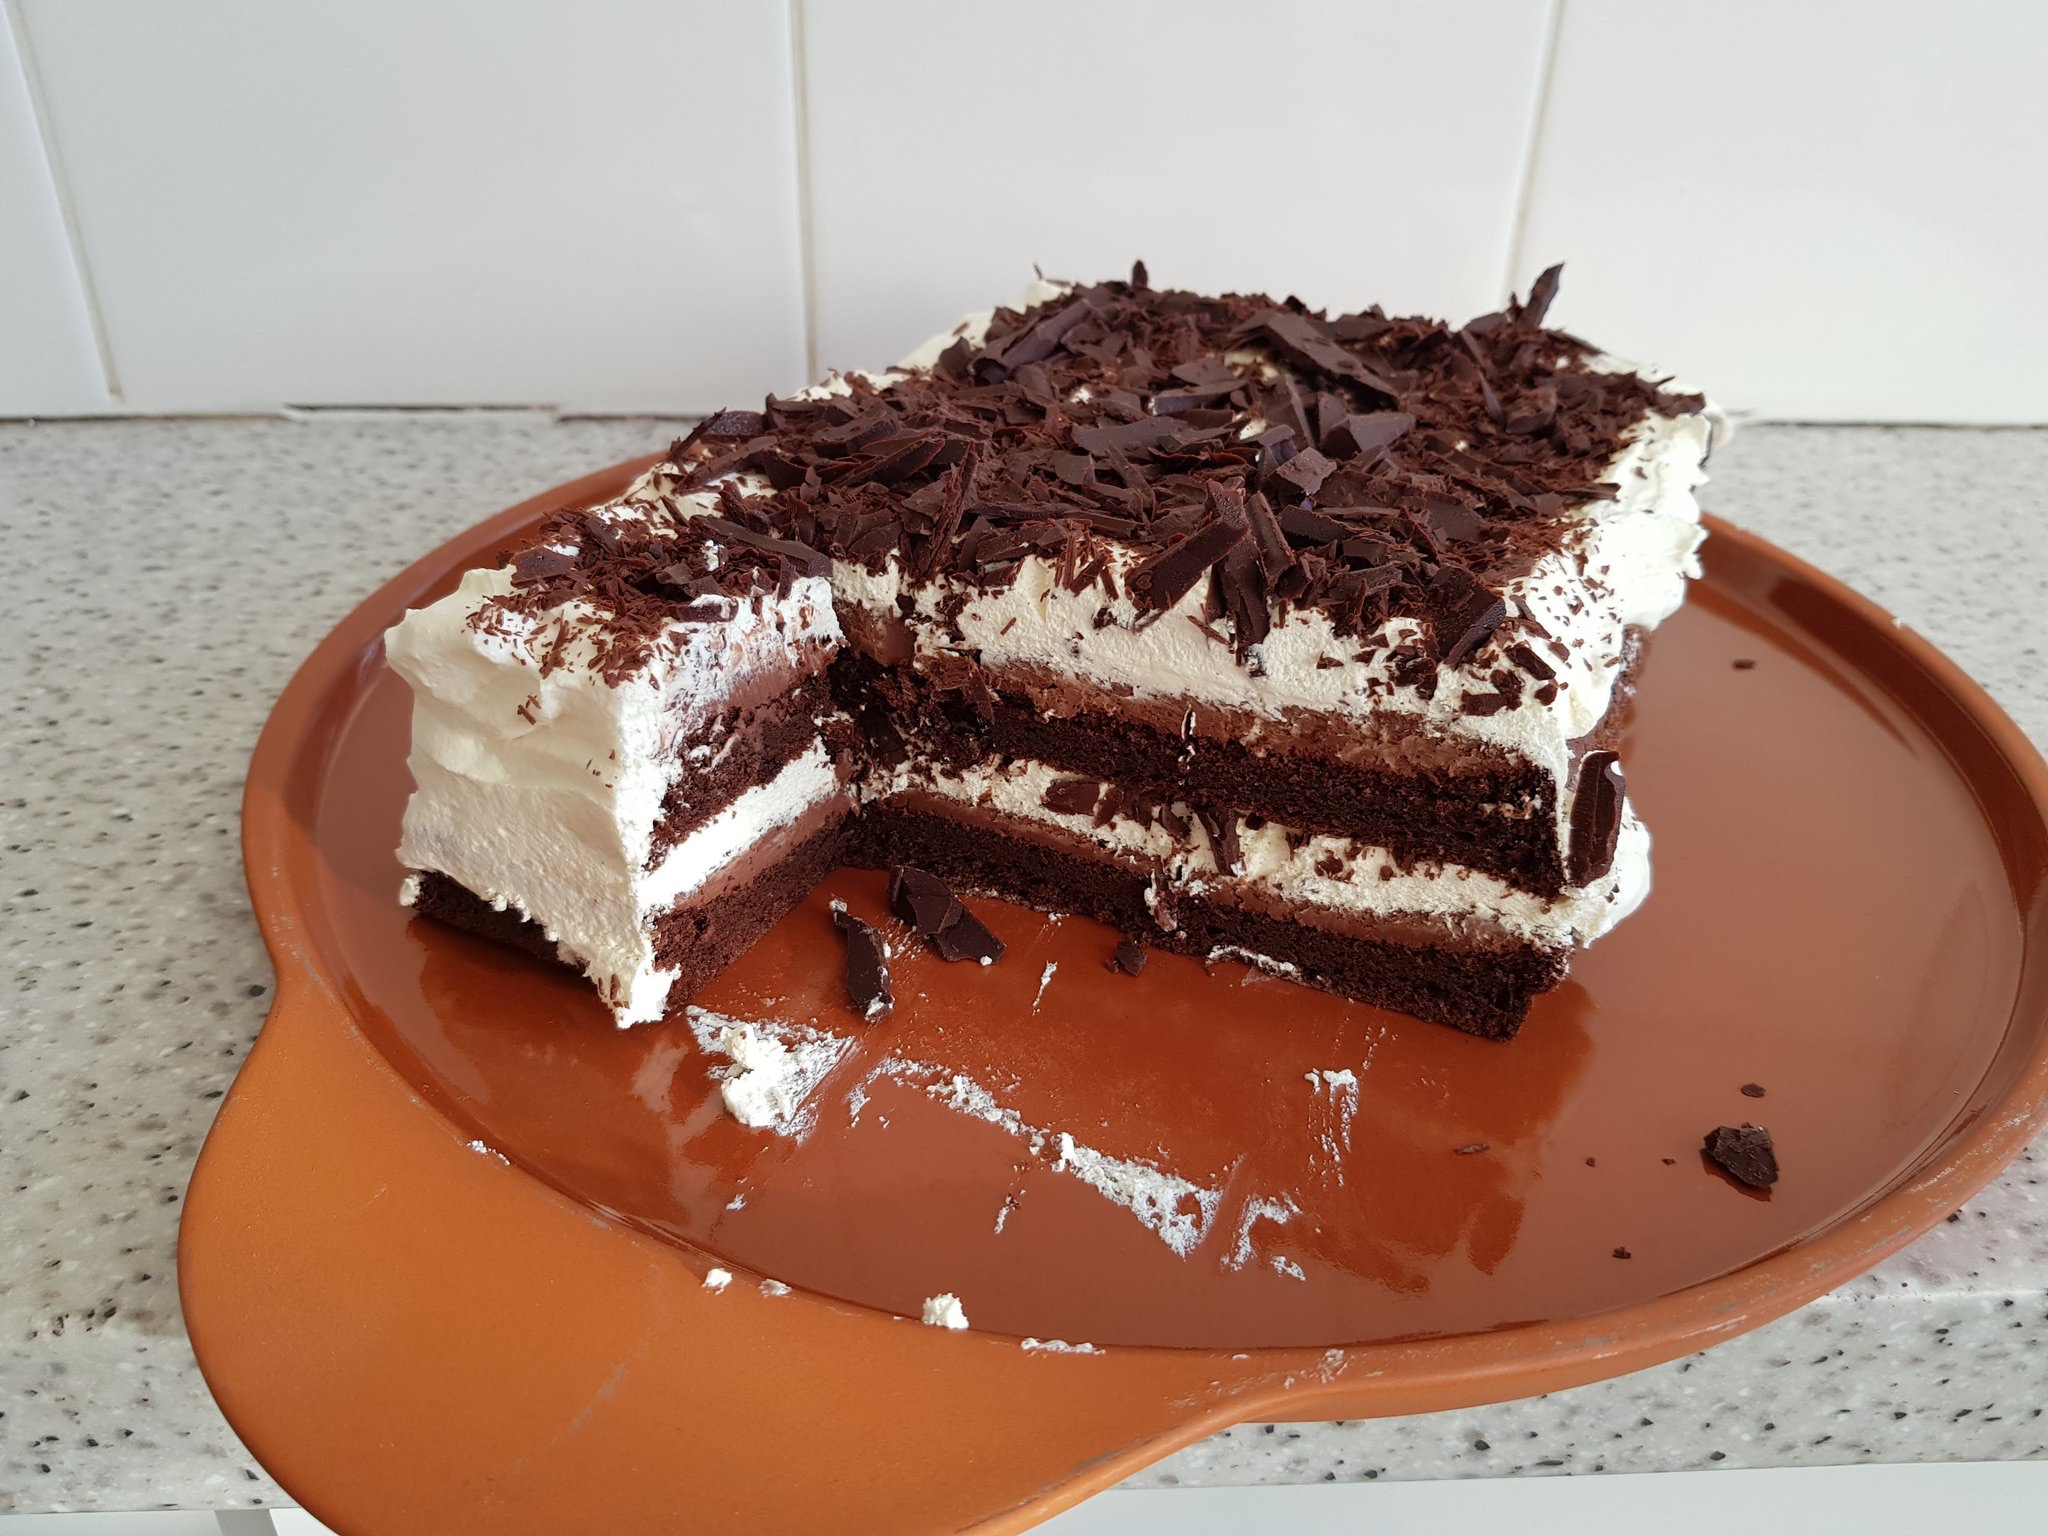 Flourless chocolate layer cake